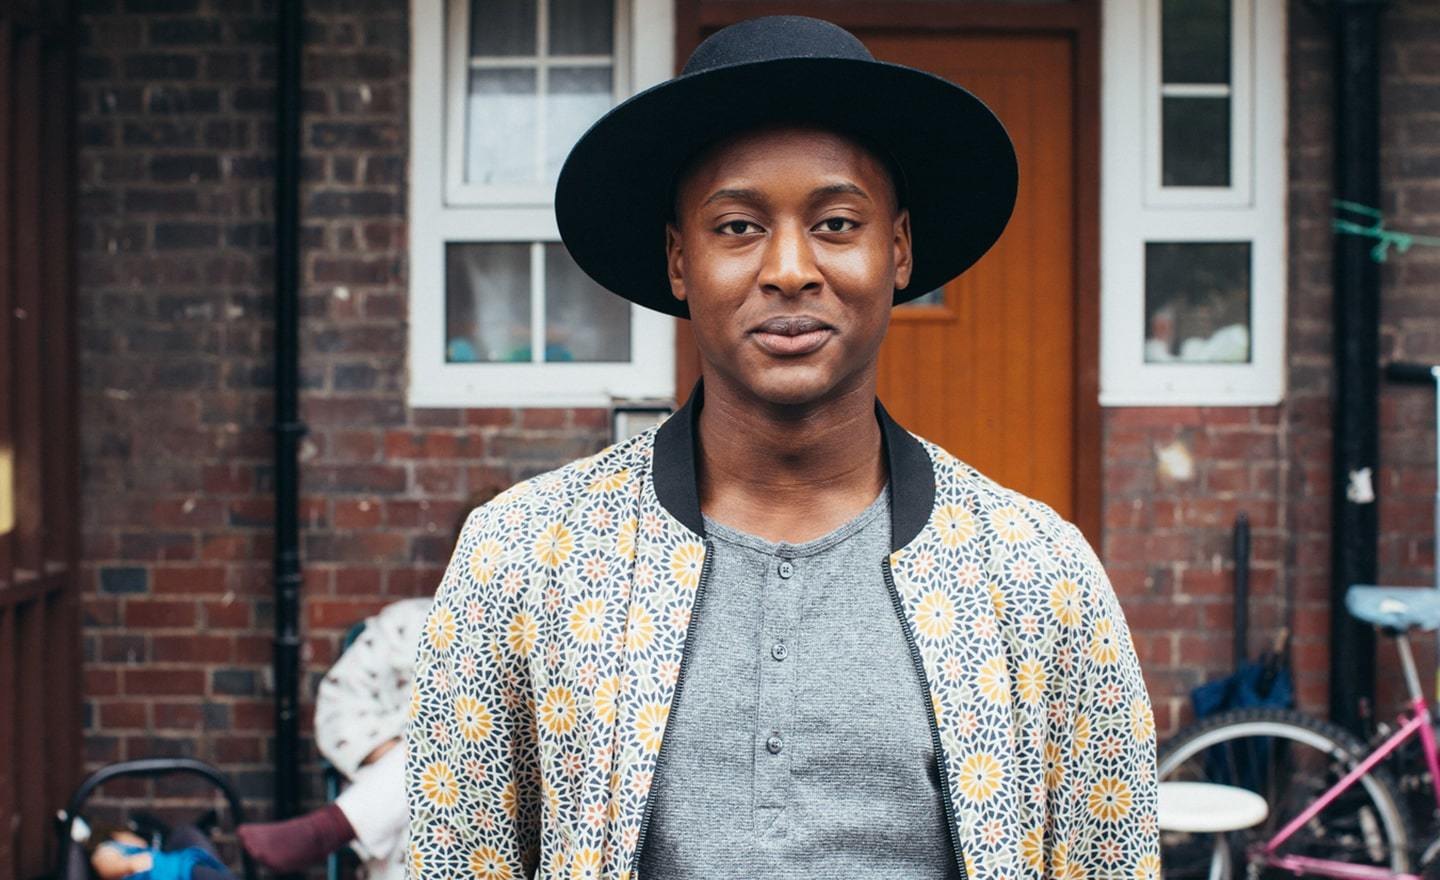 Black man in a hat smiling at camera